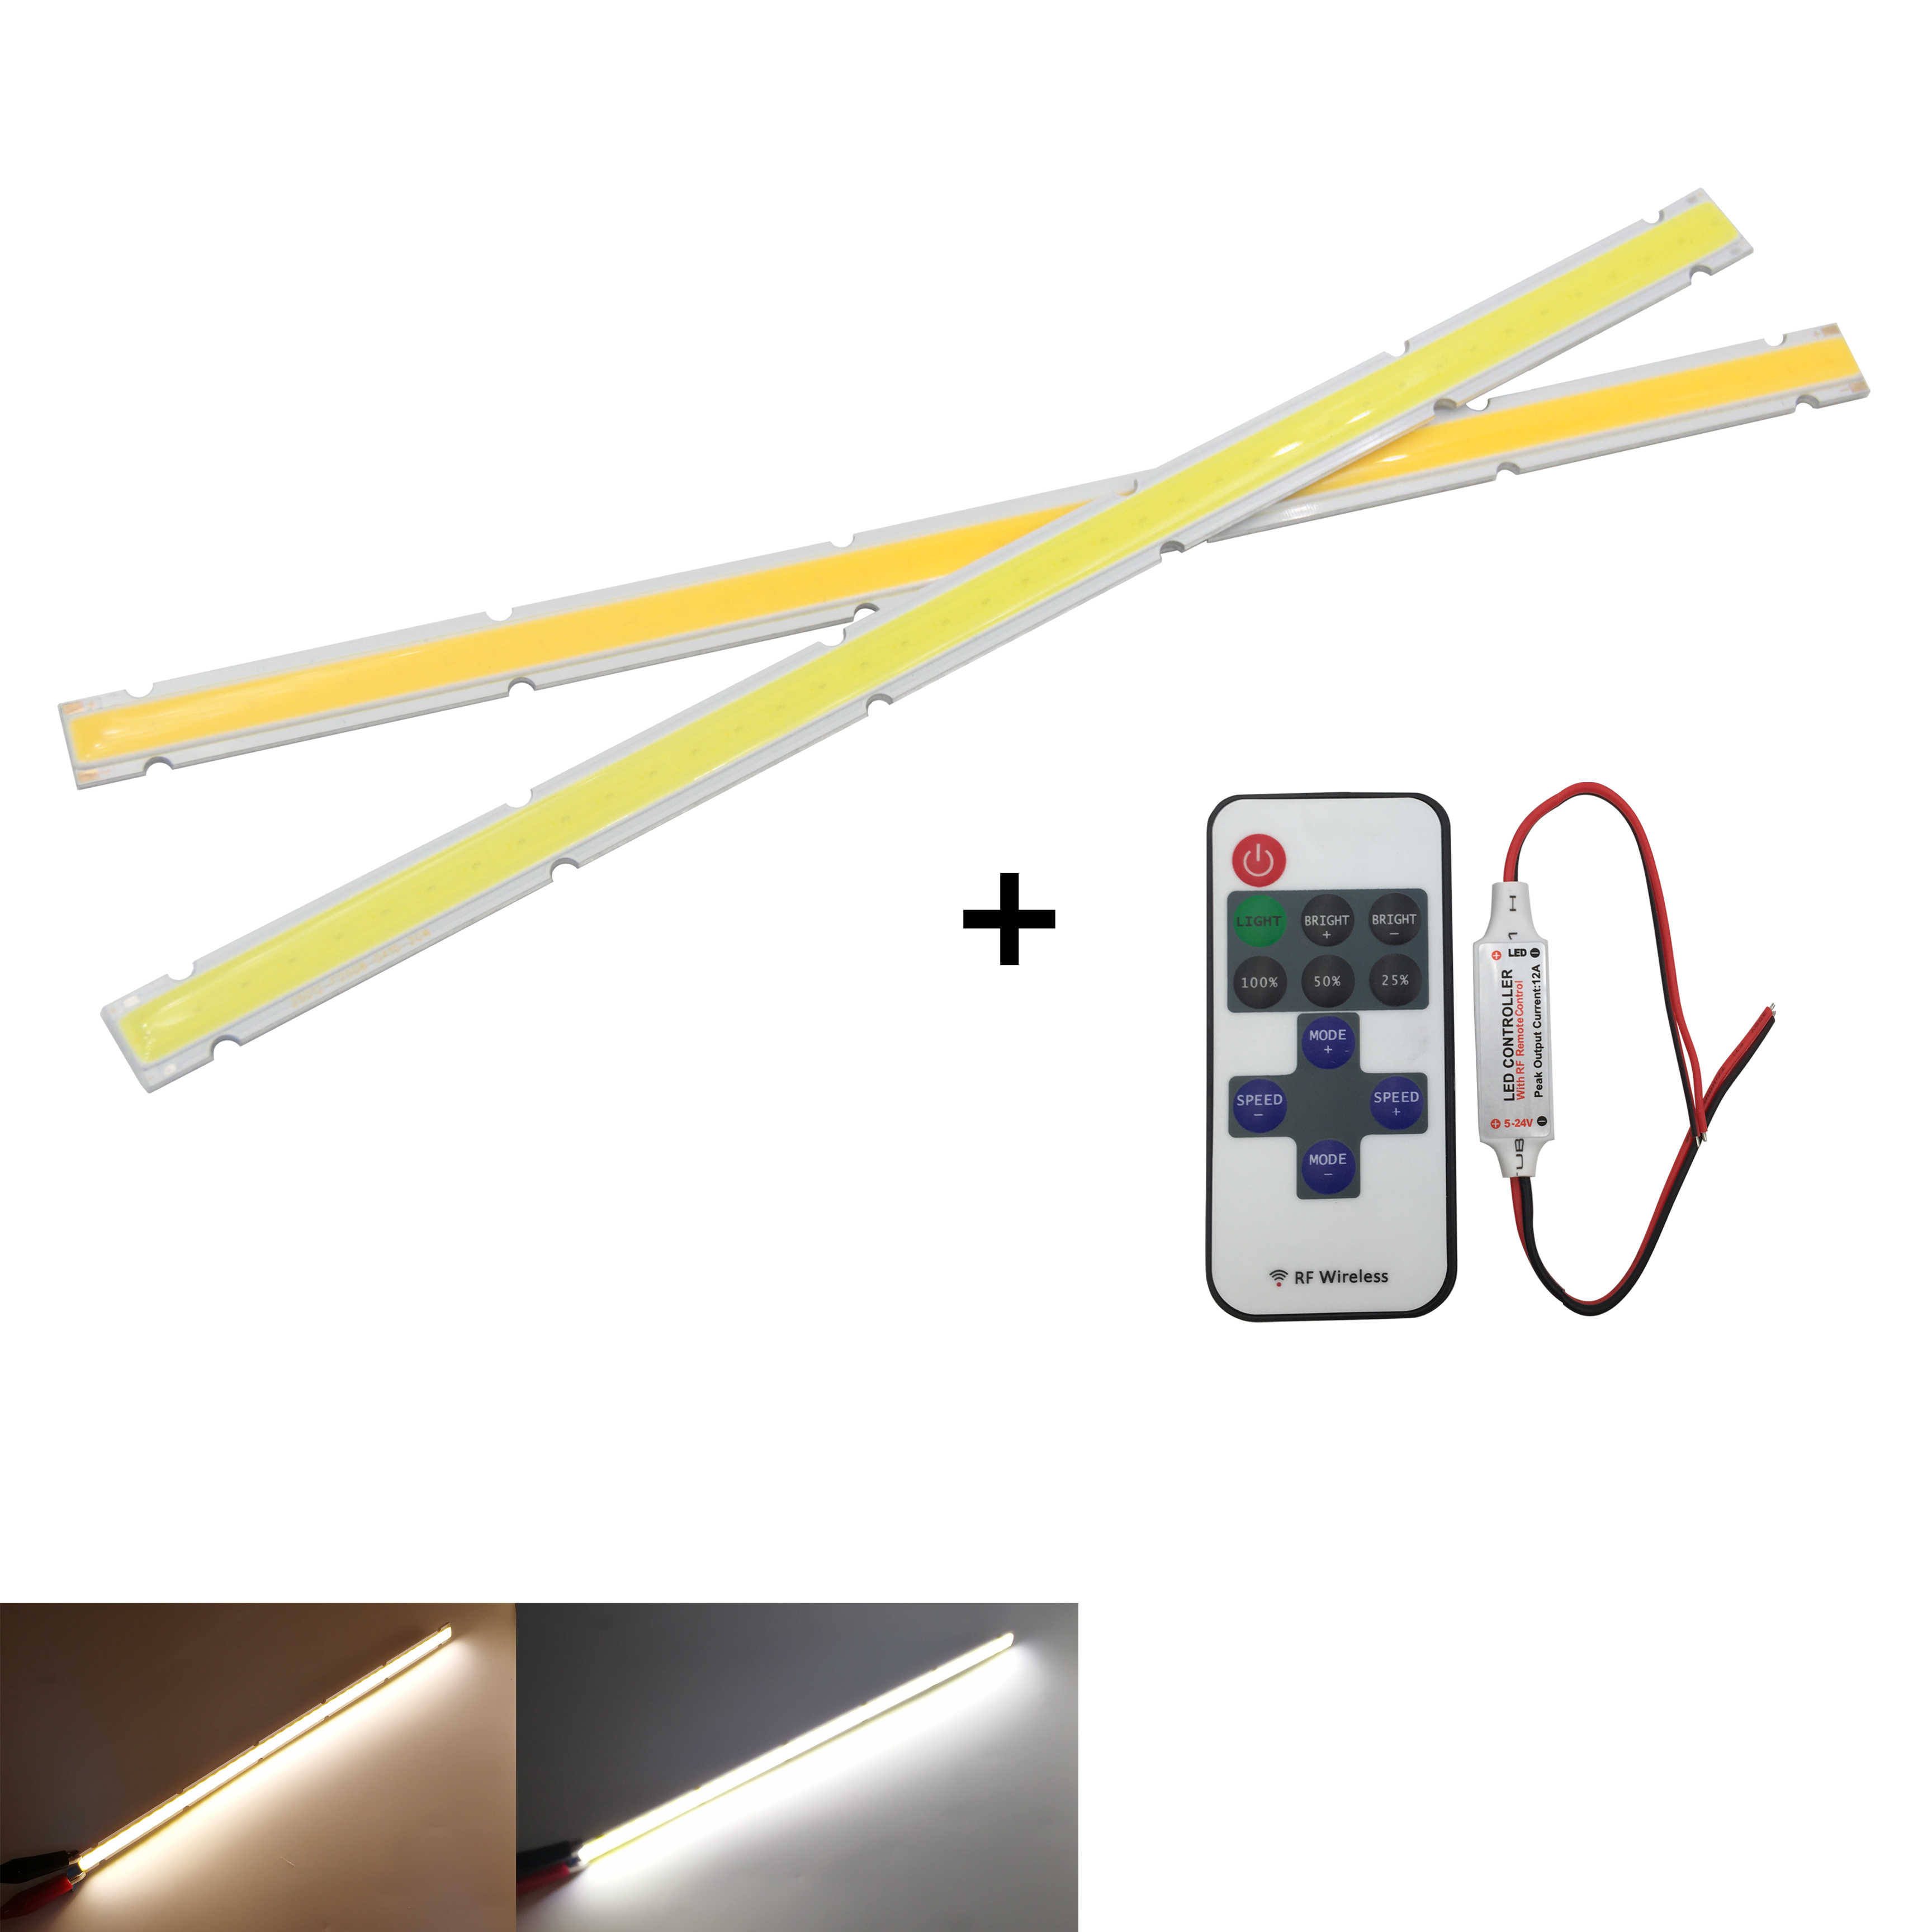 12V DC dimmable LED COB Strip 250x12mm Bar Light Source Lamp with remote controller Warm White 10W LED FLIP Chip for DIY auto